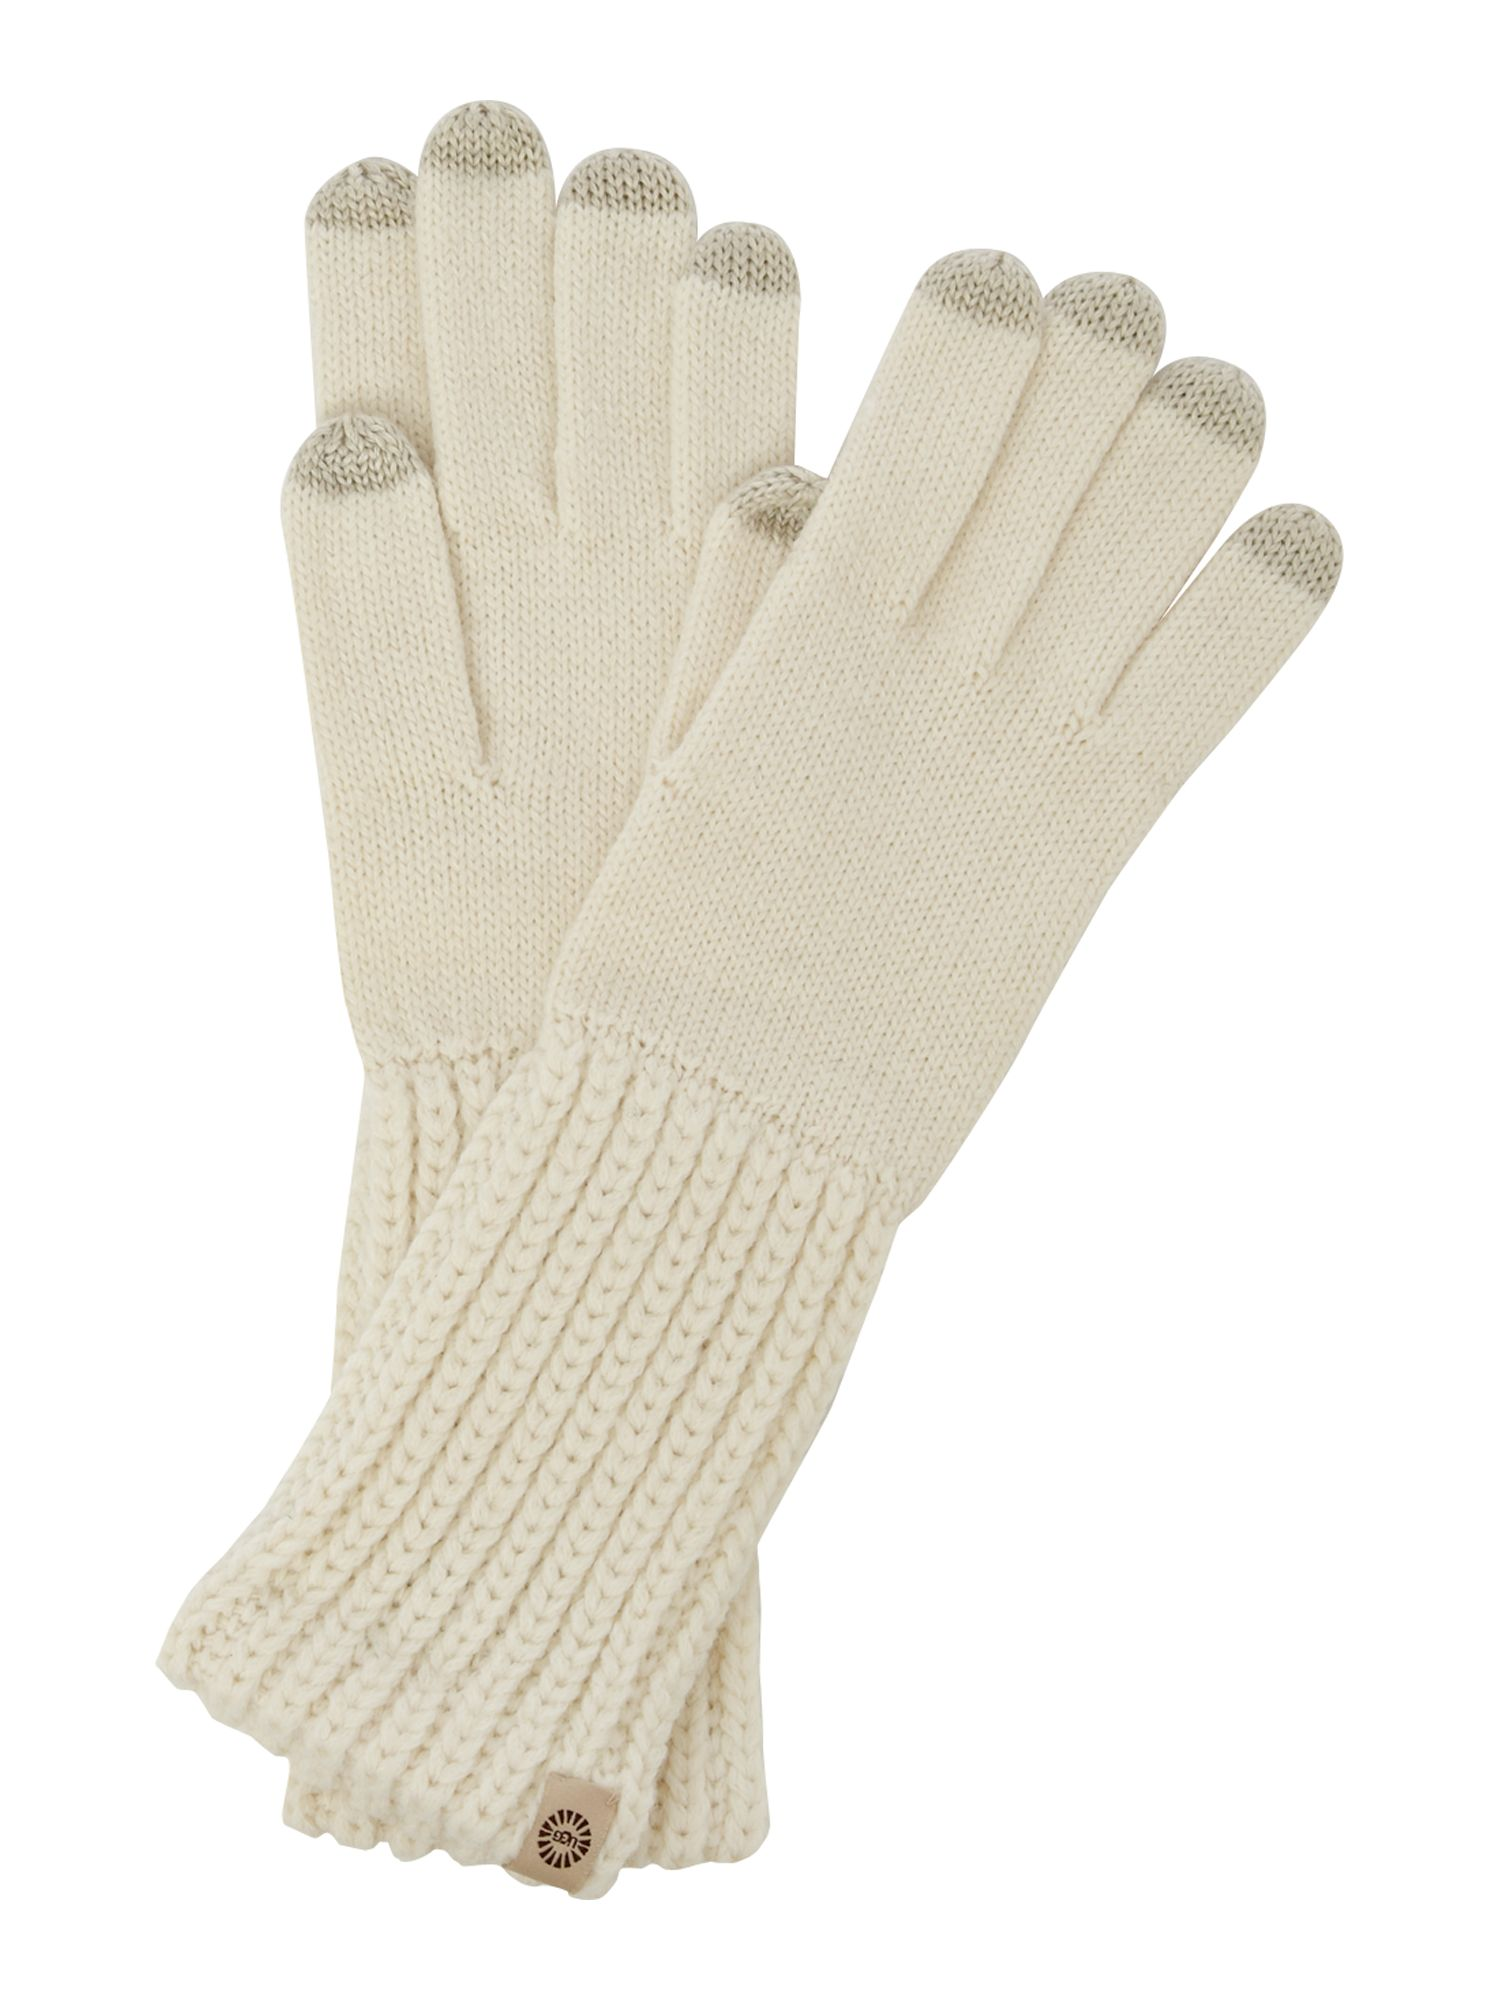 Gloves with touch sensitive fingertips - medium